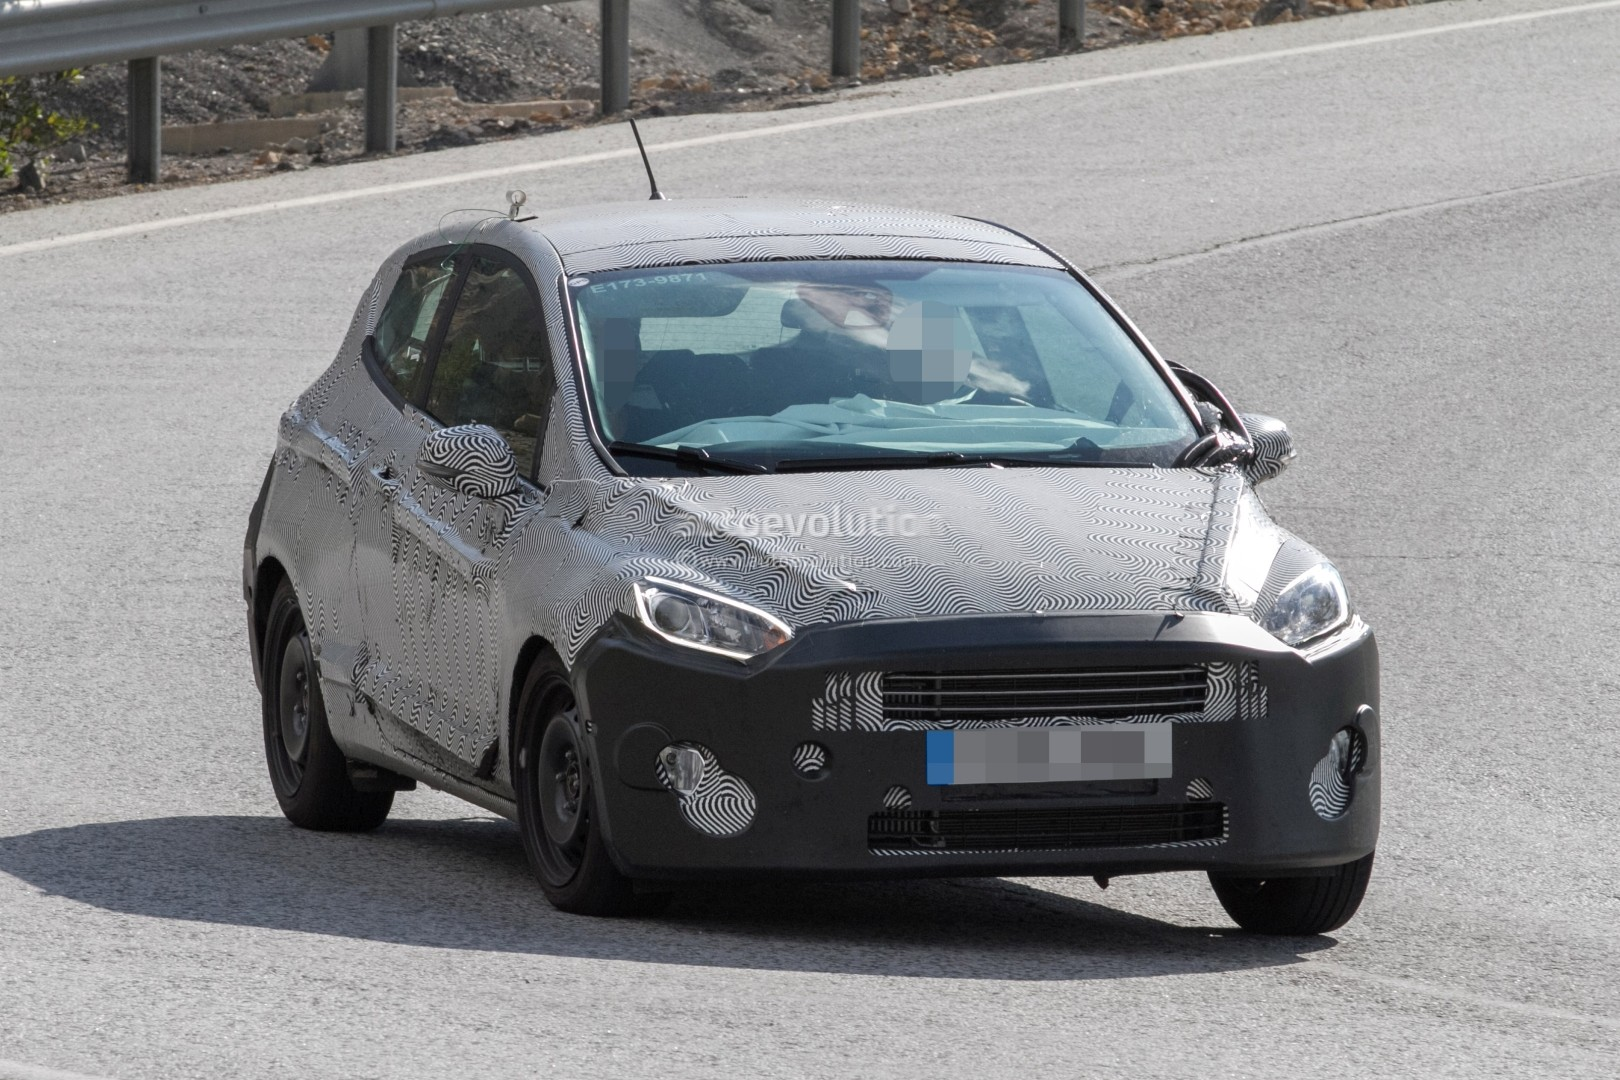 2018 Ford Fiesta 3 Door Spotted On Mountain Road Looks